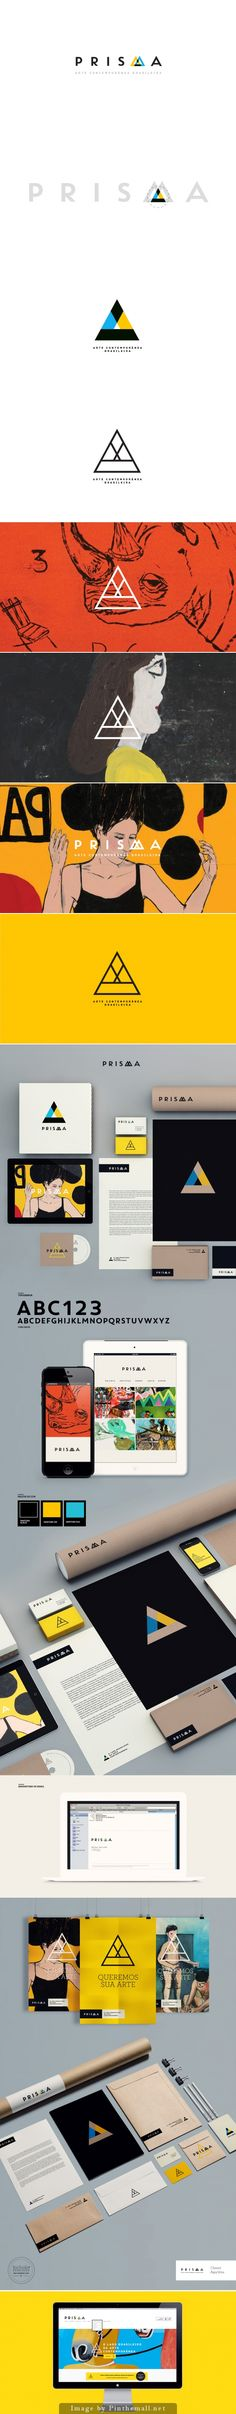 Prisma by Isabela Rodrigues #thevintees #graphicdesign #identity